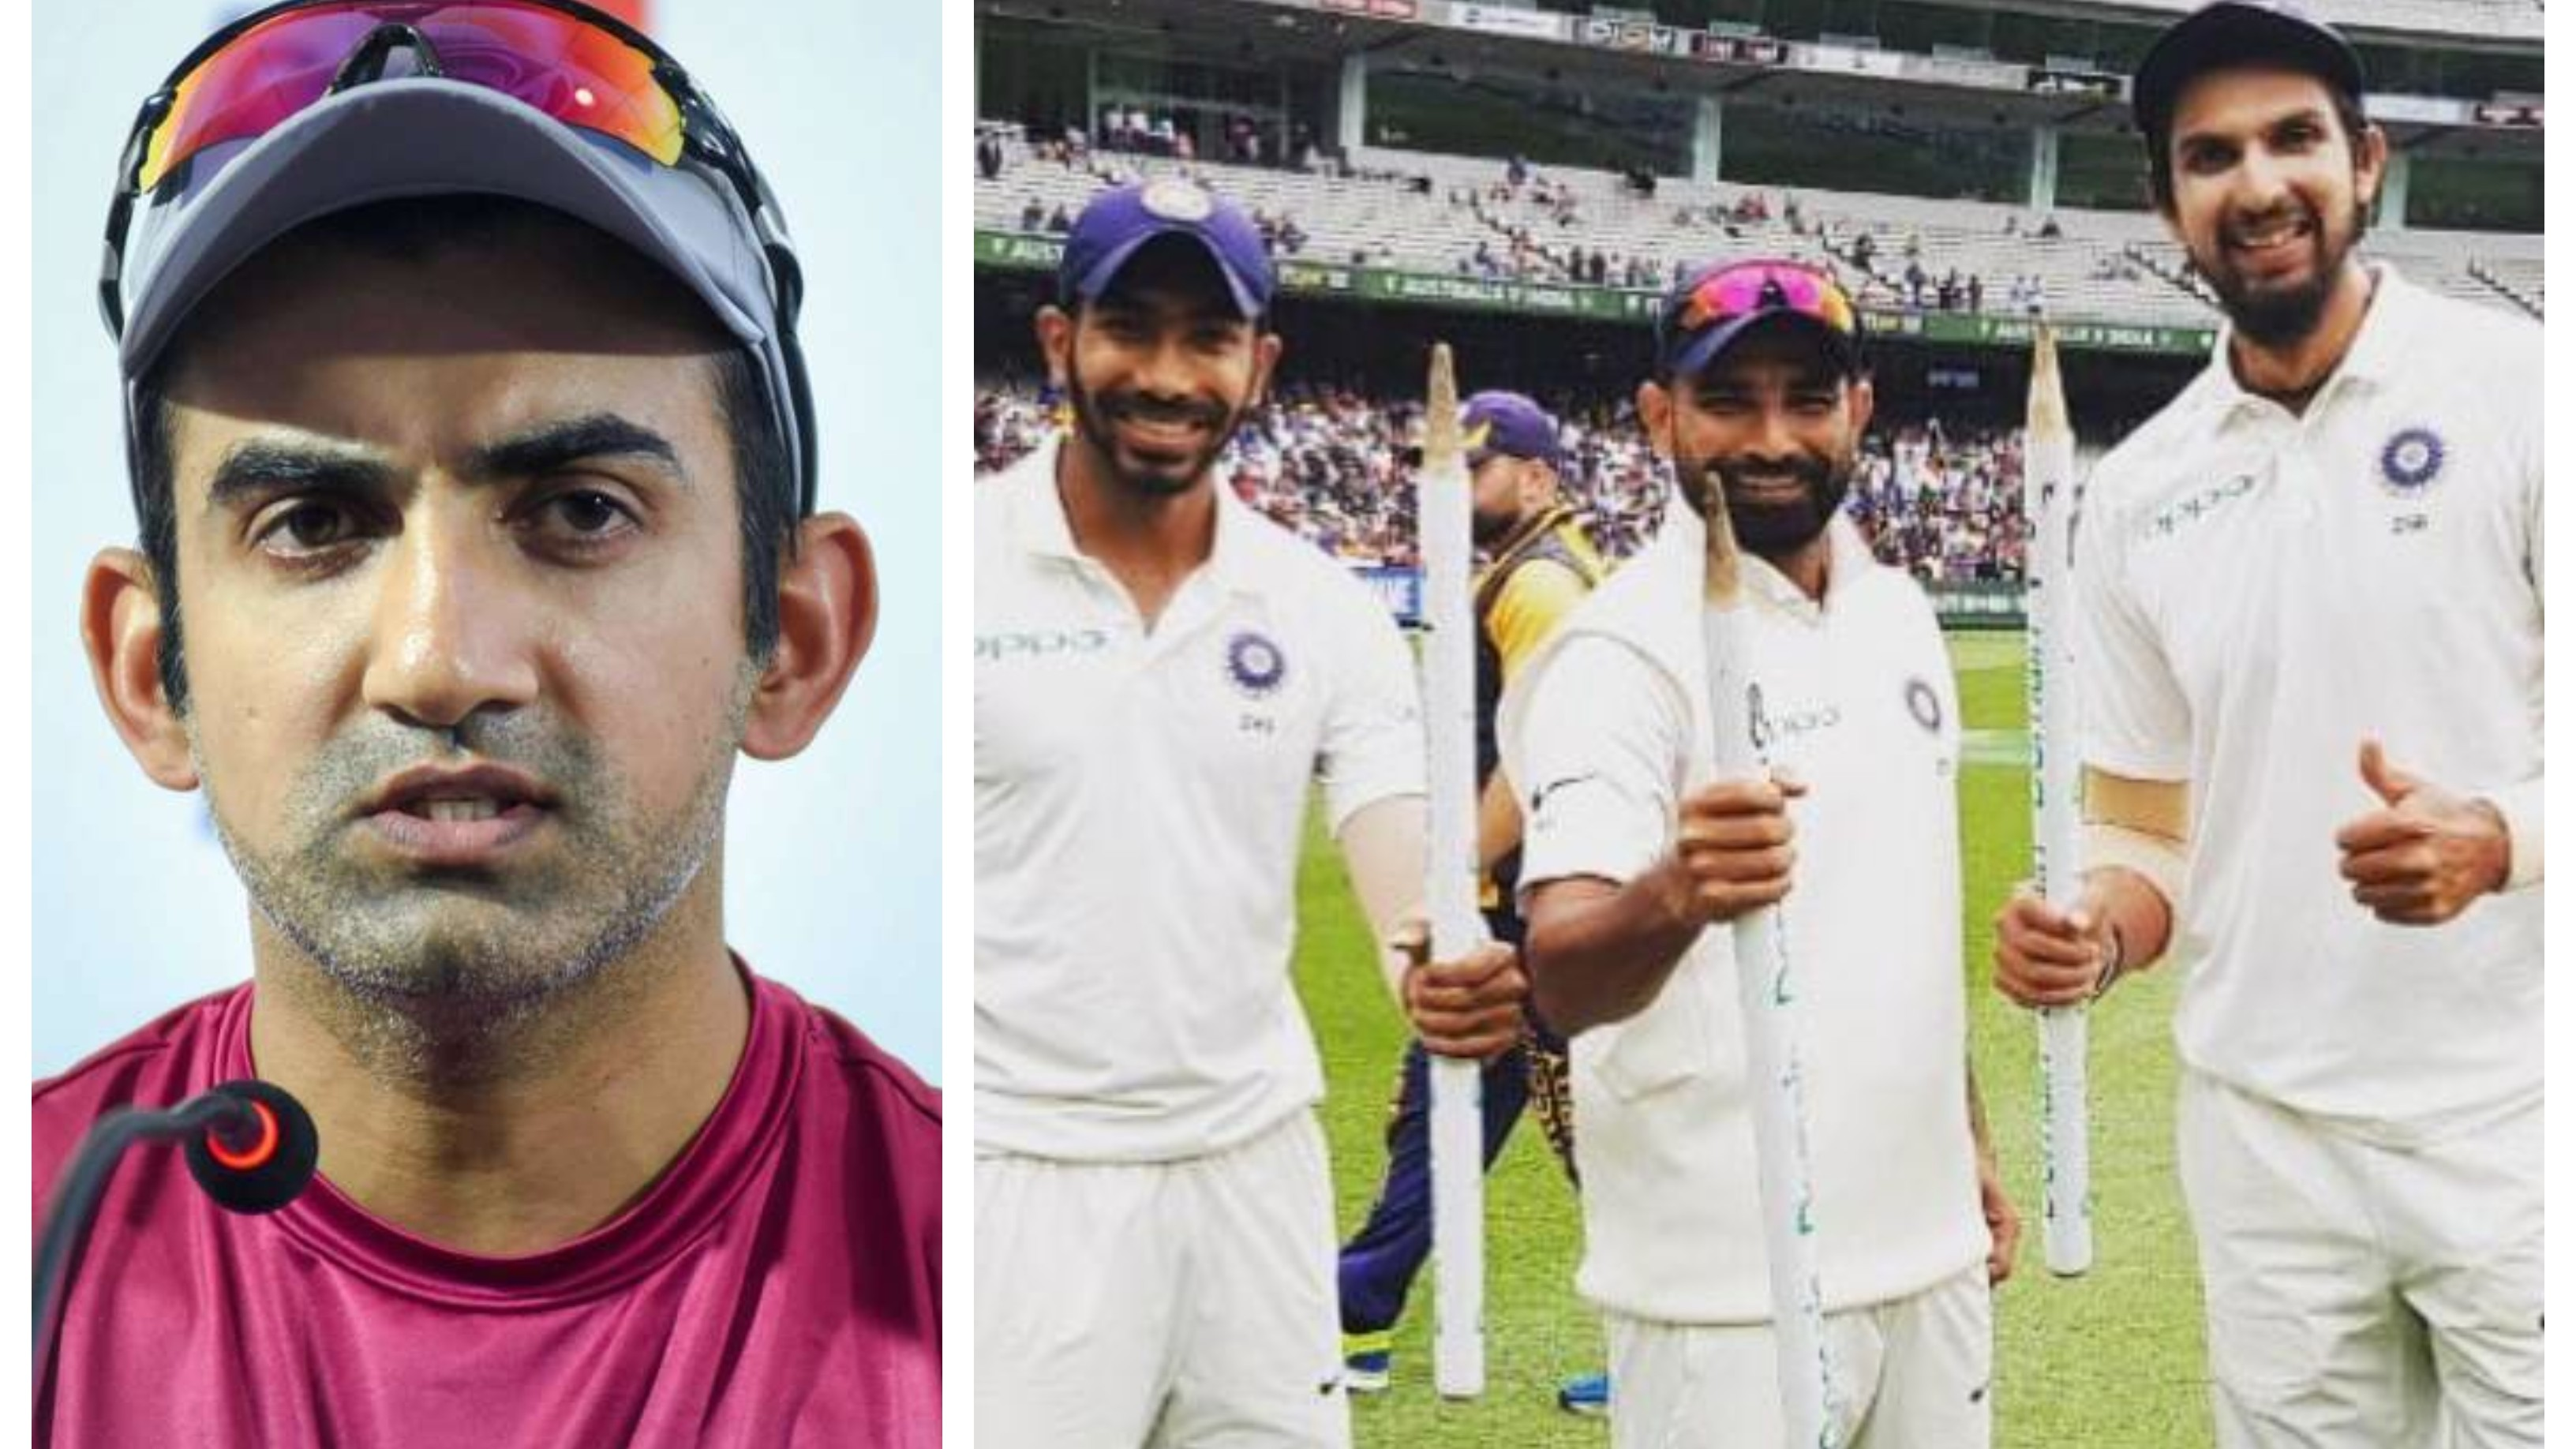 Gambhir pins hopes on Indian pacers to rattle Australian batting line-up even with Smith, Warner